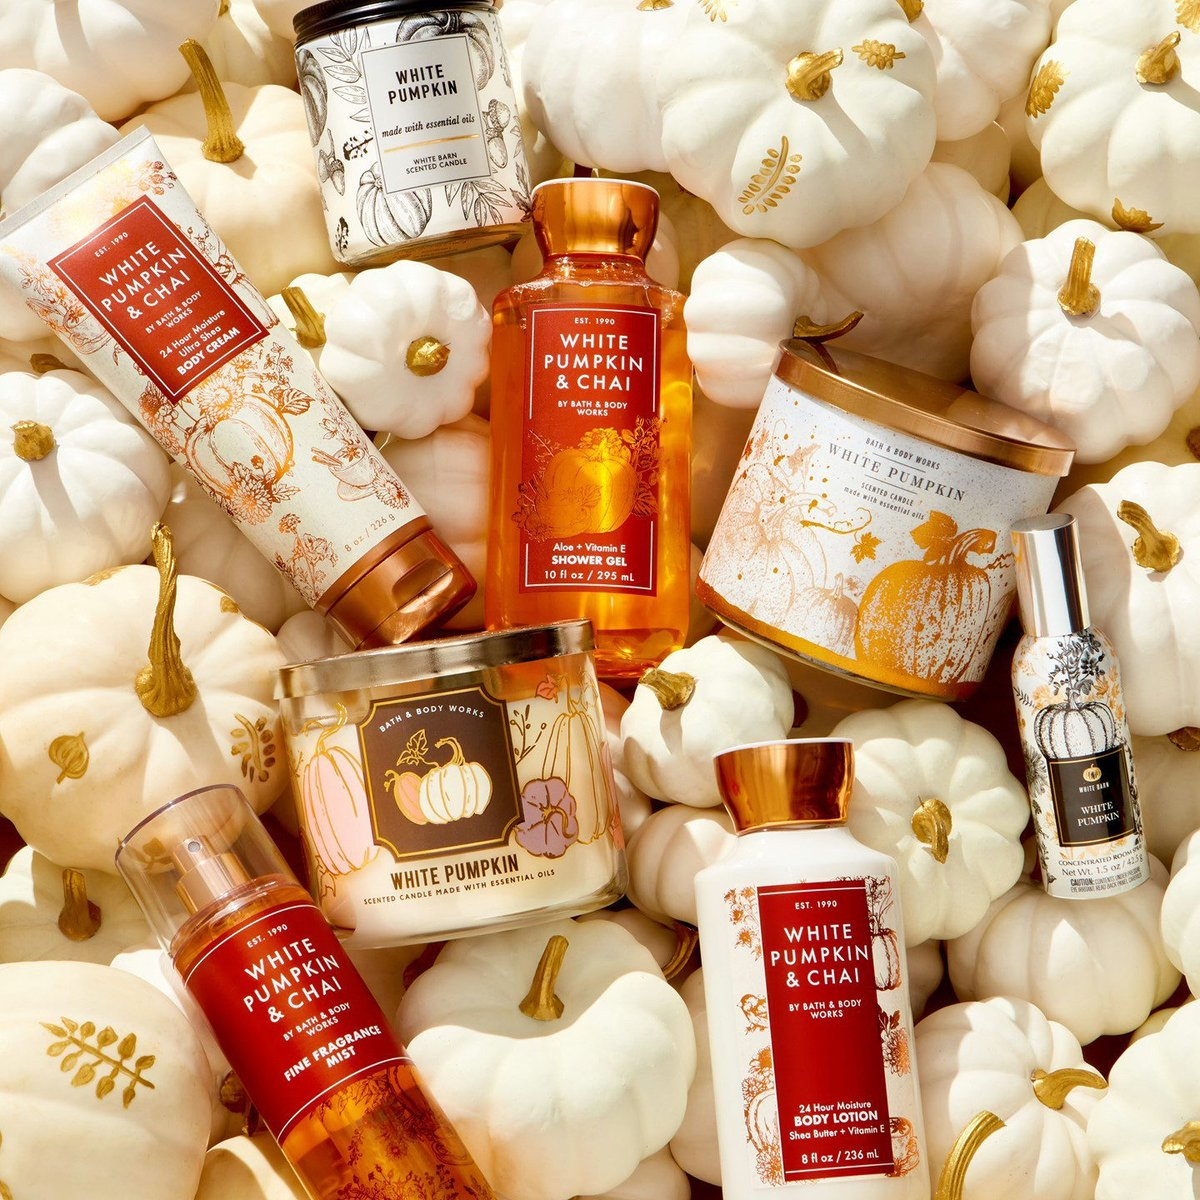 Show of hands 👐 if you're picking up  🆕 White Pumpkin & Chai to add to your collection of White Pumpkin EVERYTHING! 🧡 🤍 https://t.co/PGD8CR5kiS